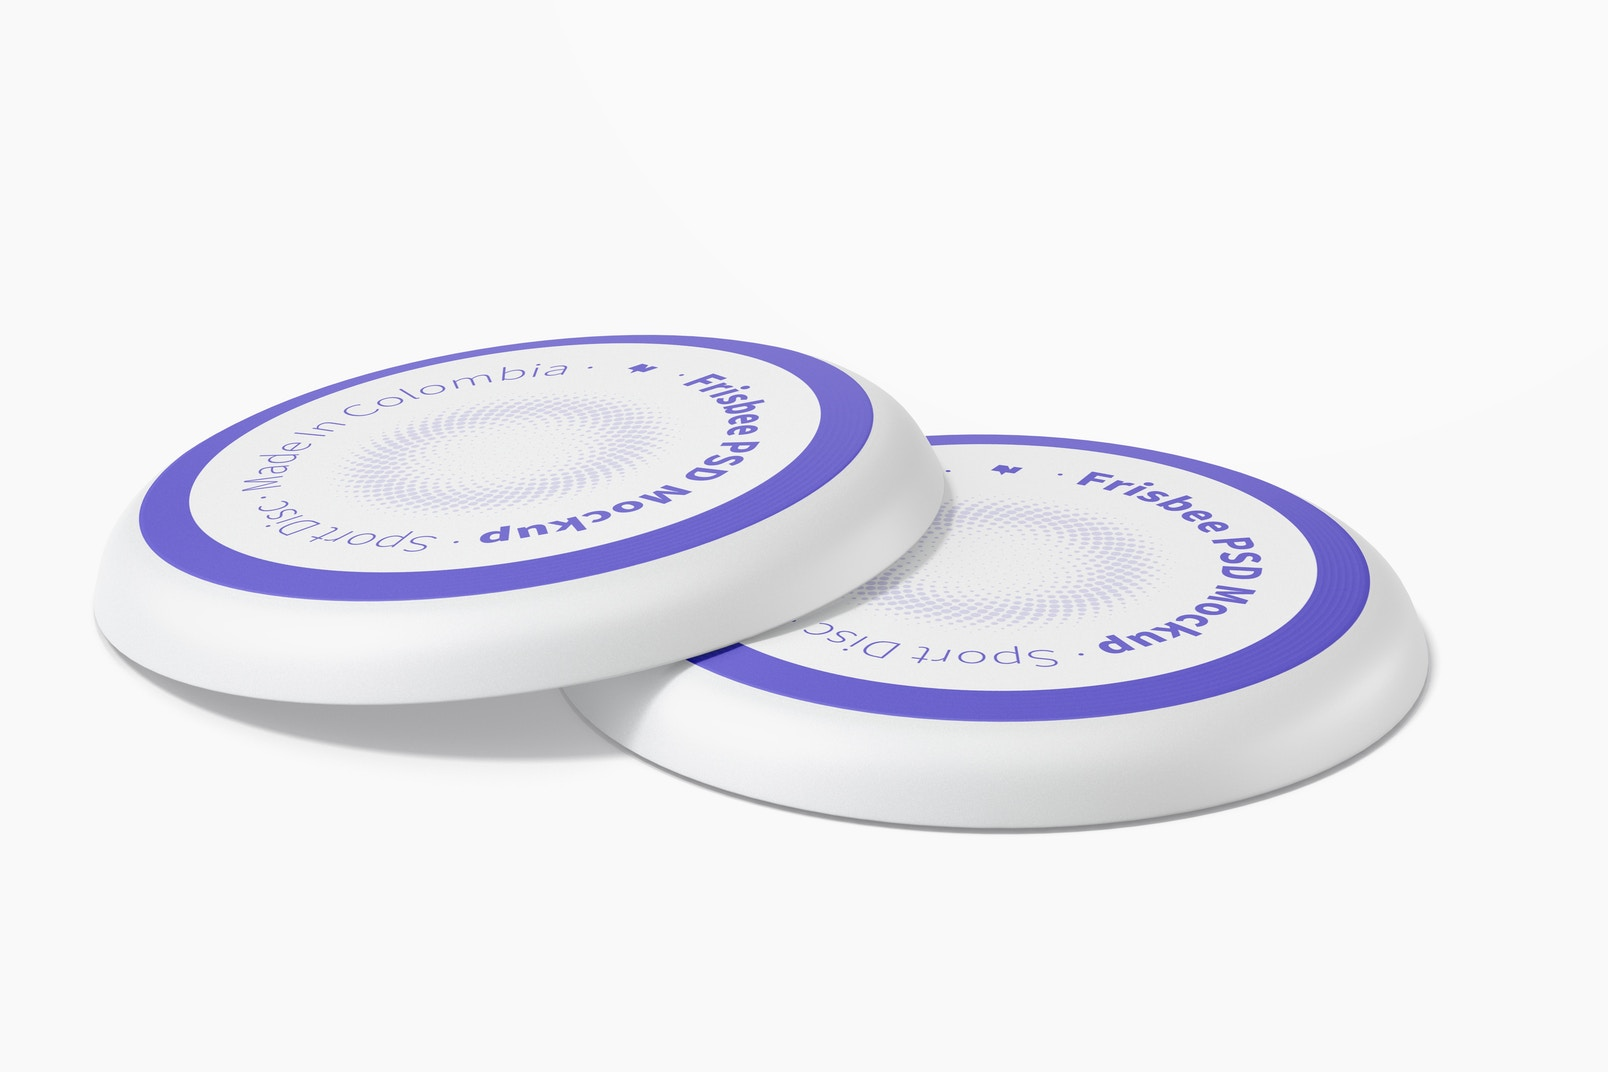 Frisbees Mockup, Perspective View